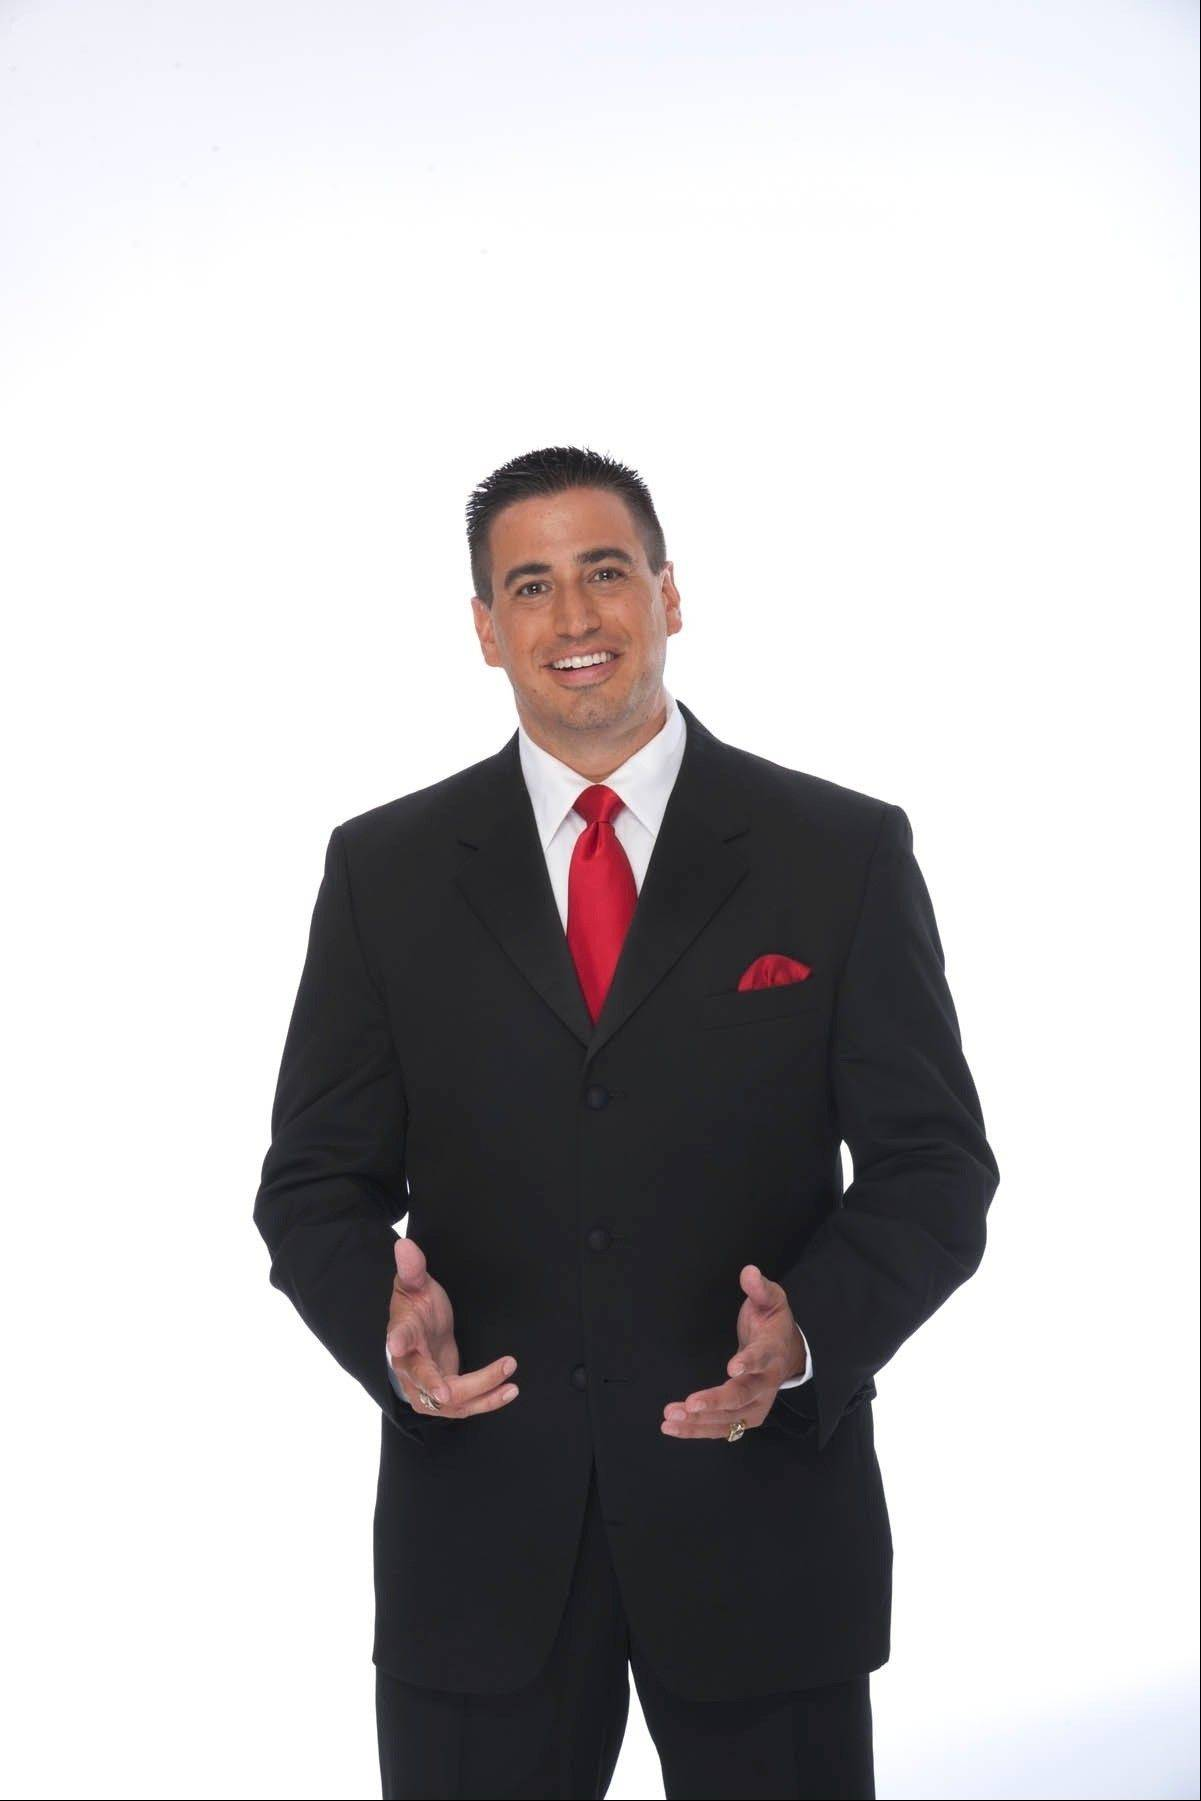 WWE announcer Justin Roberts of Buffalo Grove says he's working in his dream job.